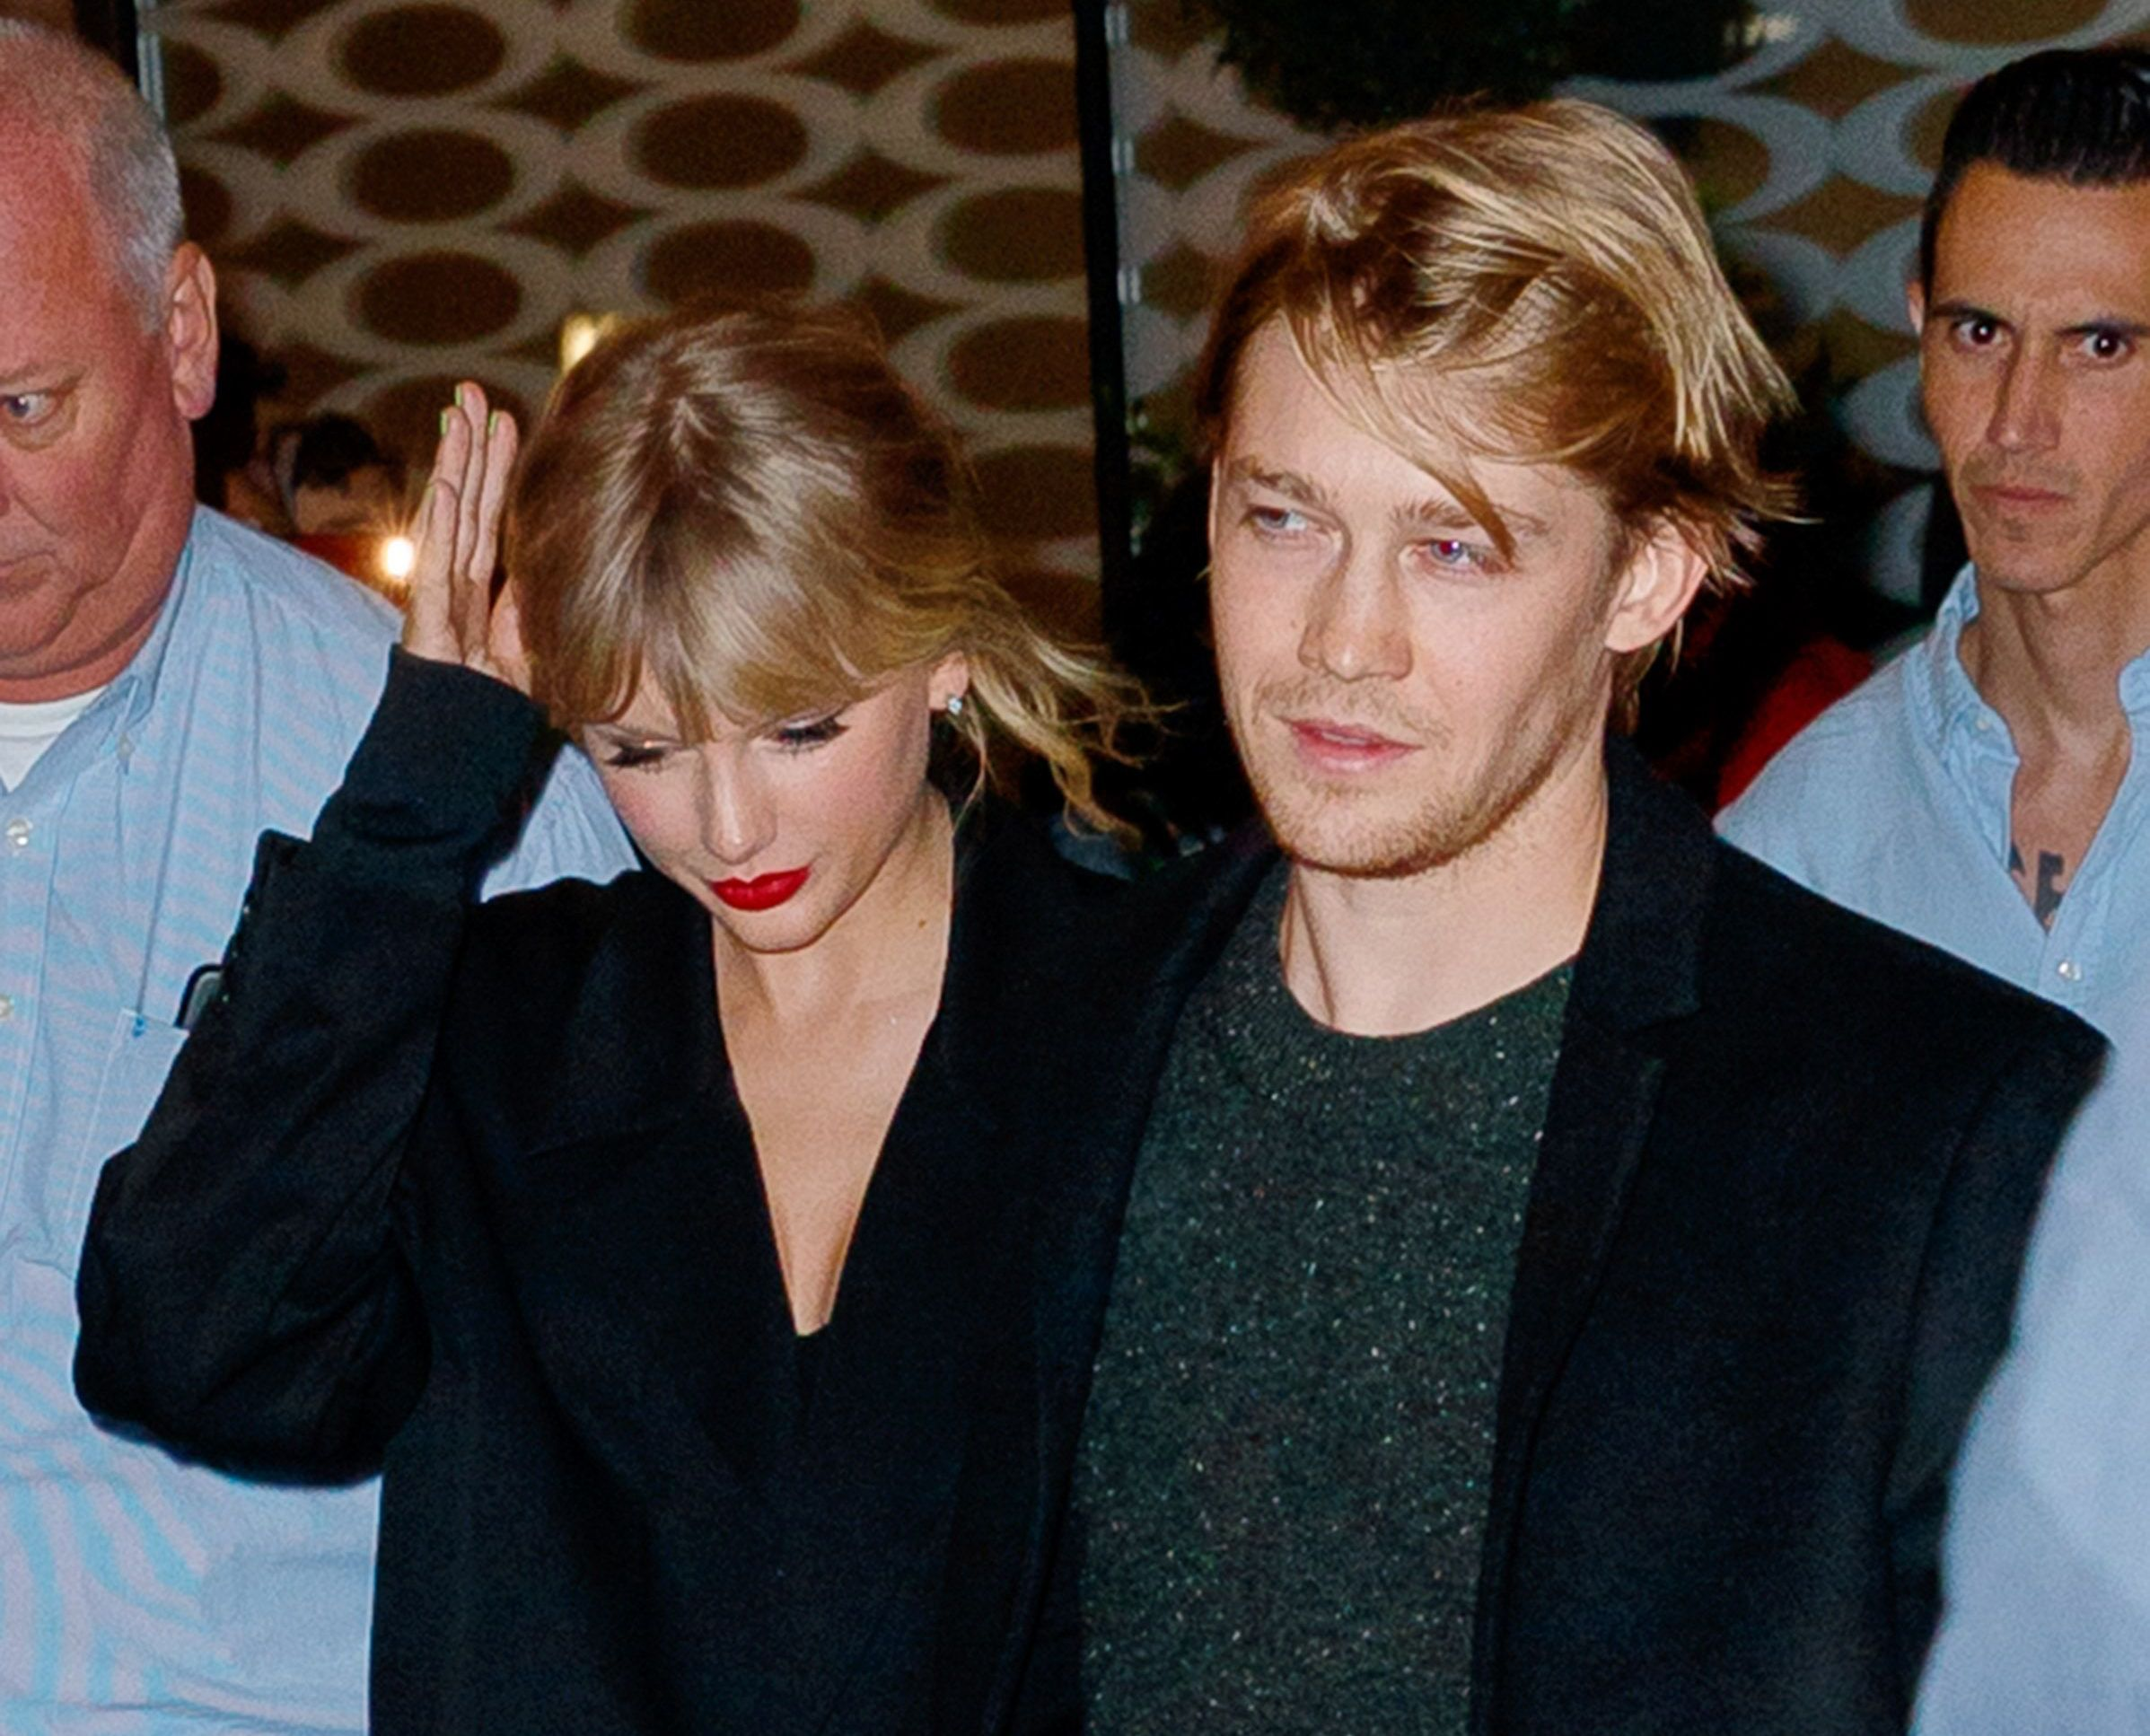 Speculation is that Joe Alwyn helped Taylor Swift with some of her new songs.